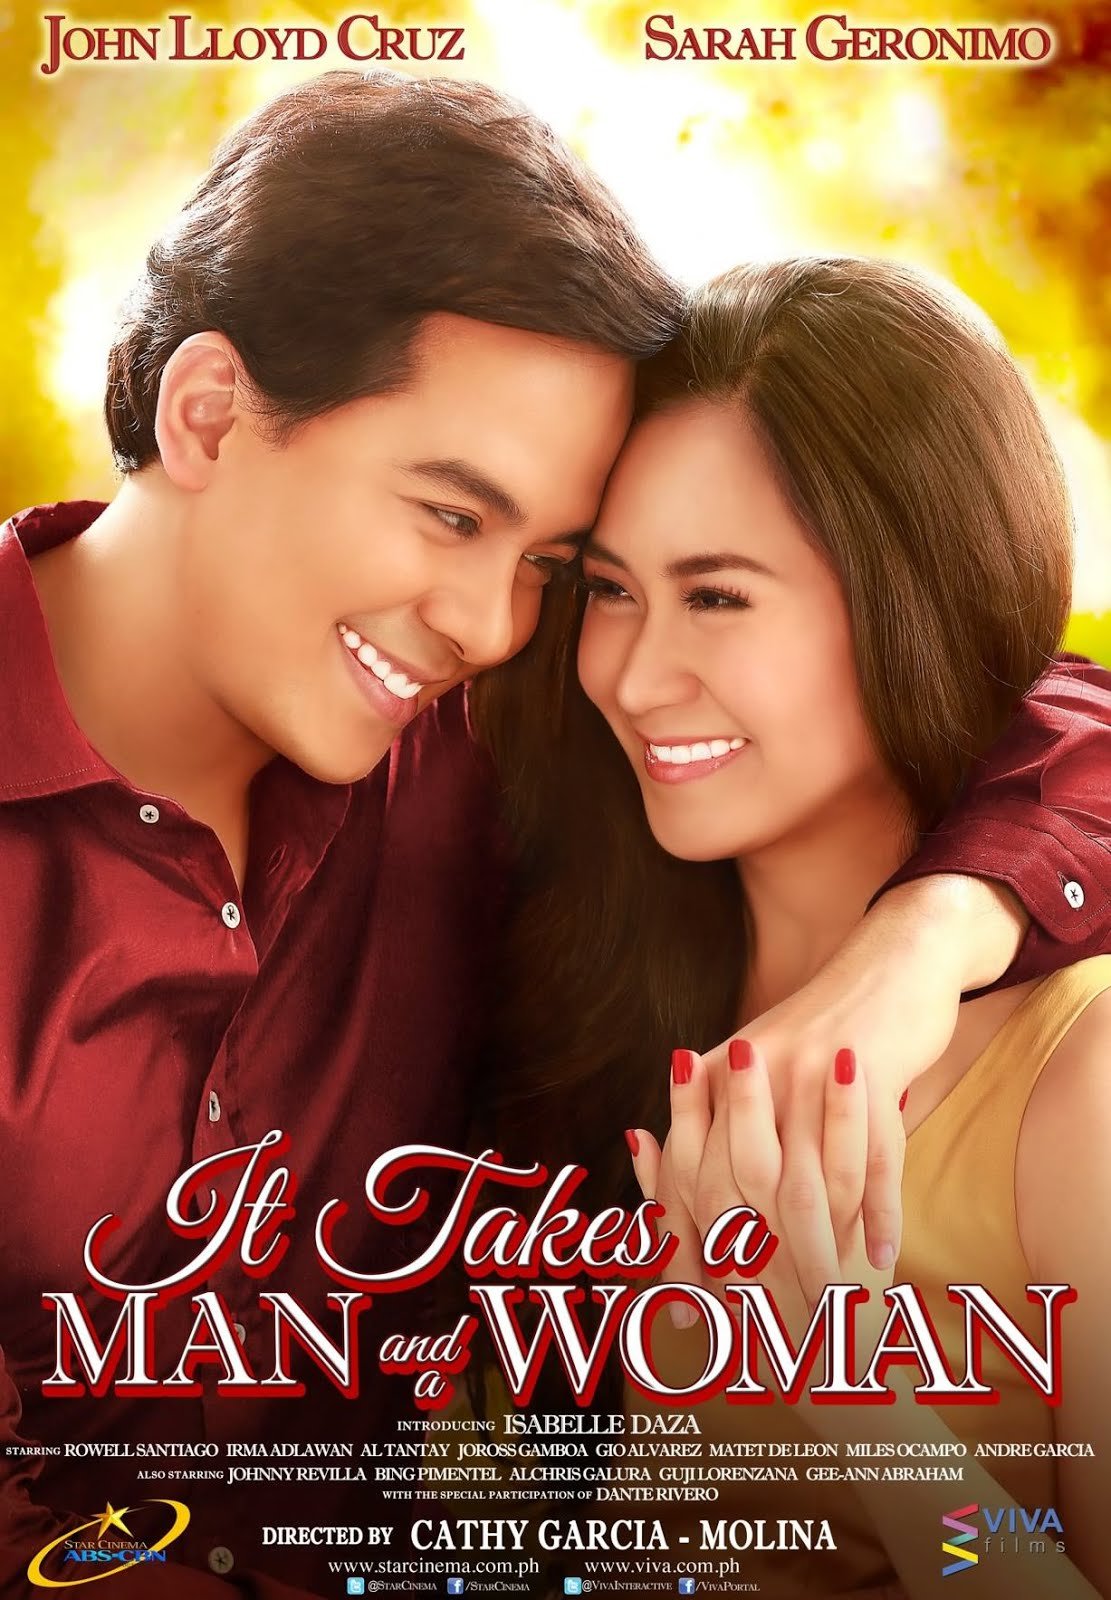 tagalog movies free download site